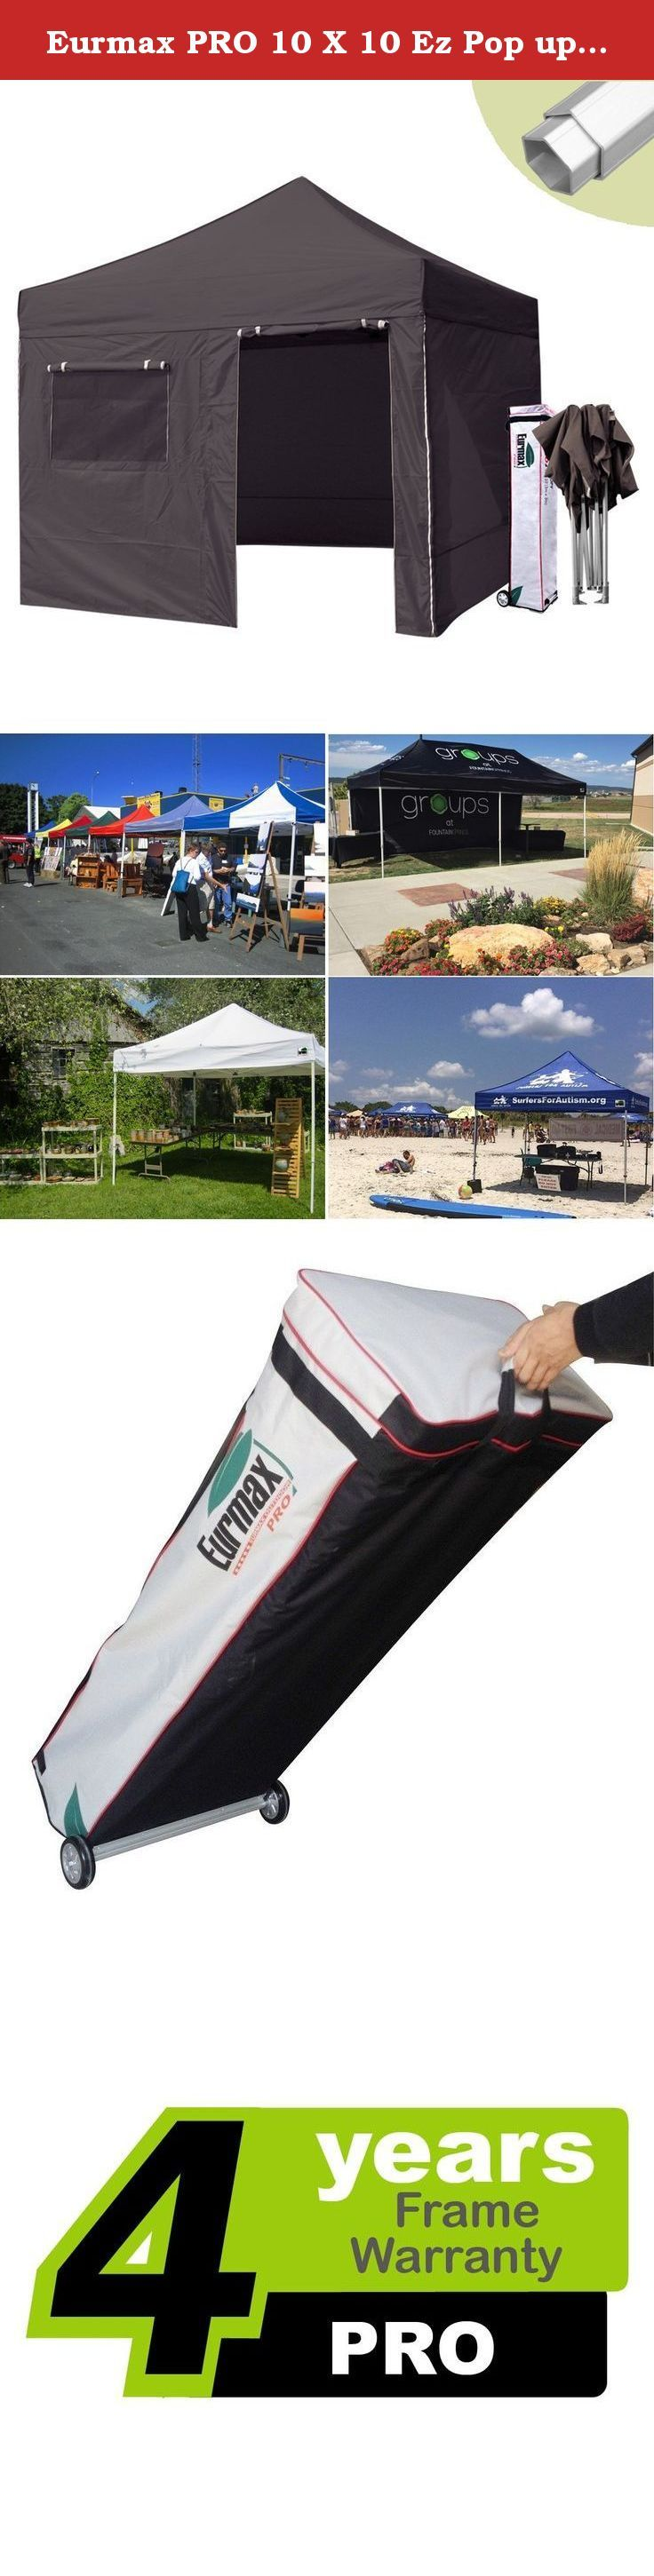 """Eurmax PRO 10 X 10 Ez Pop up Canopy Tent Commercial Canopy Gazebo with Full Walls and Roller Bag, Black. Eurmax New PRO easy pop-up canopy is our high commercial level canopy with Full Aluminum frame, it can be quickly erected by two people without any tools. The canopy is light in weight and high in quality. we have 3 sizes available and 19 colors for your choice. this portable canopy comes with a super wheeled bag with two 4.7"""" wheels which can handle well even on rough ground.each…"""